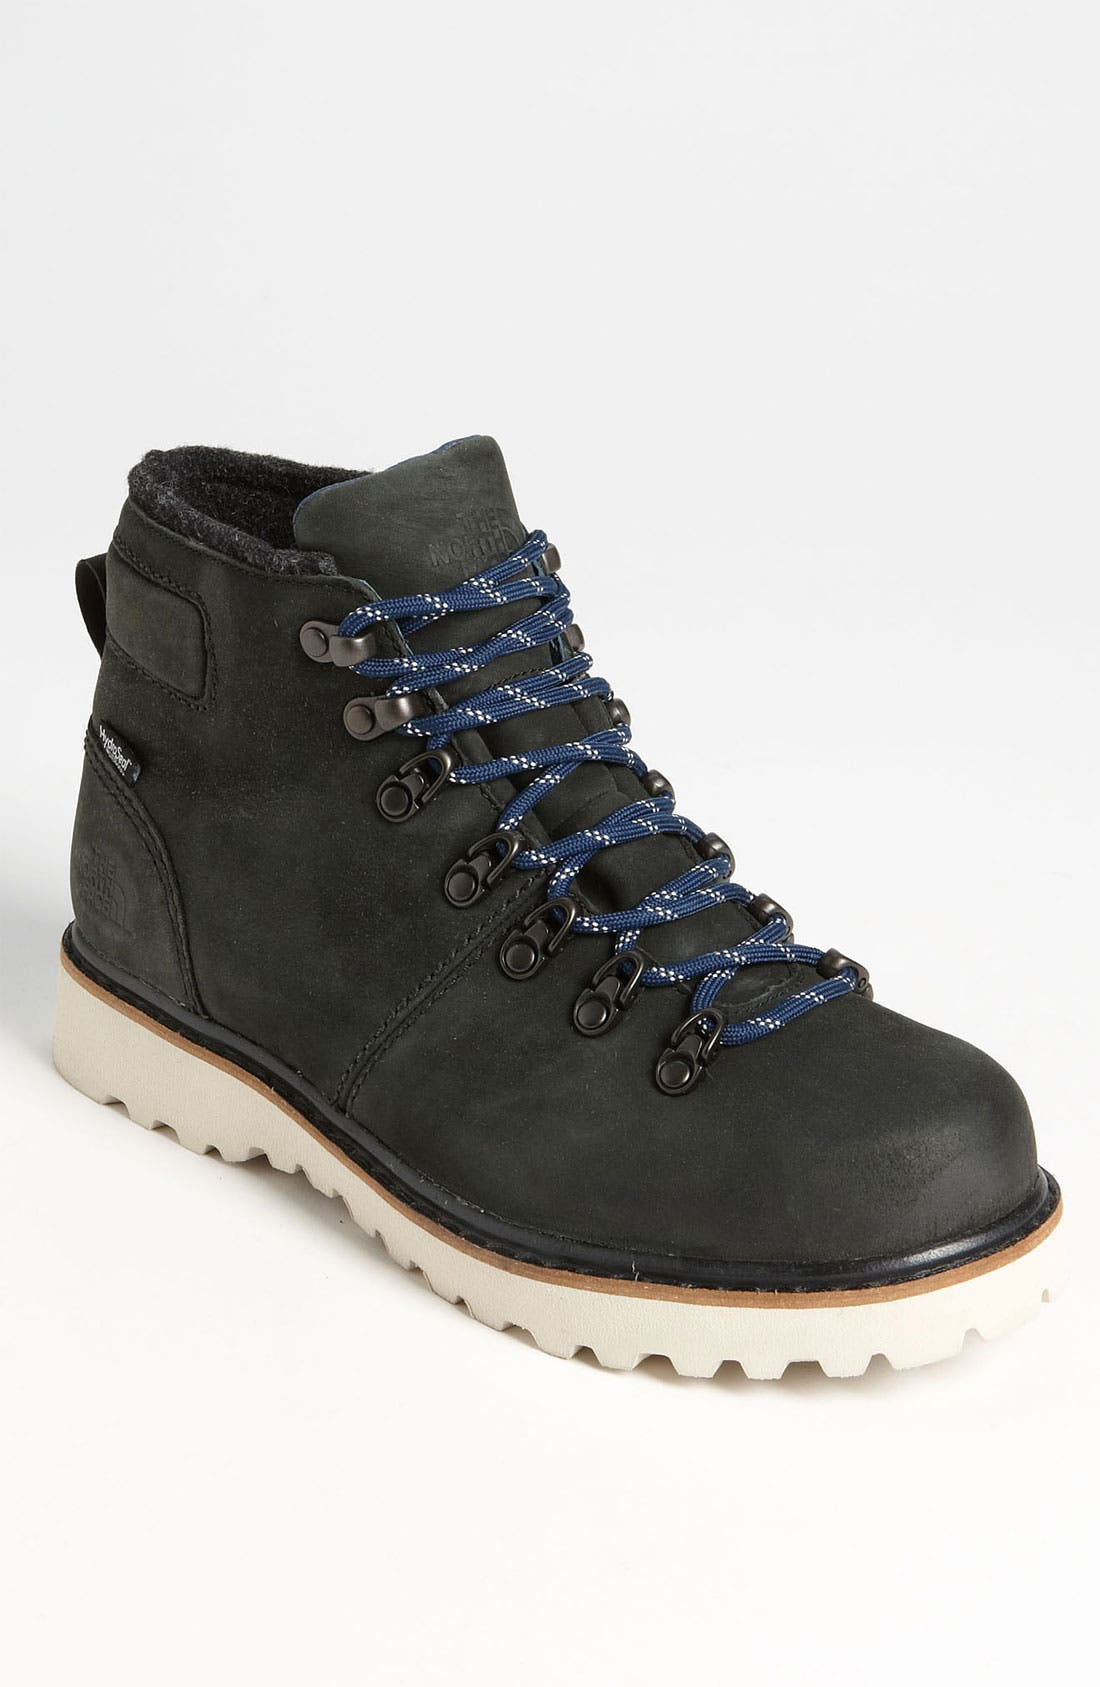 Main Image - The North Face 'Ballard' Six Inch Boot